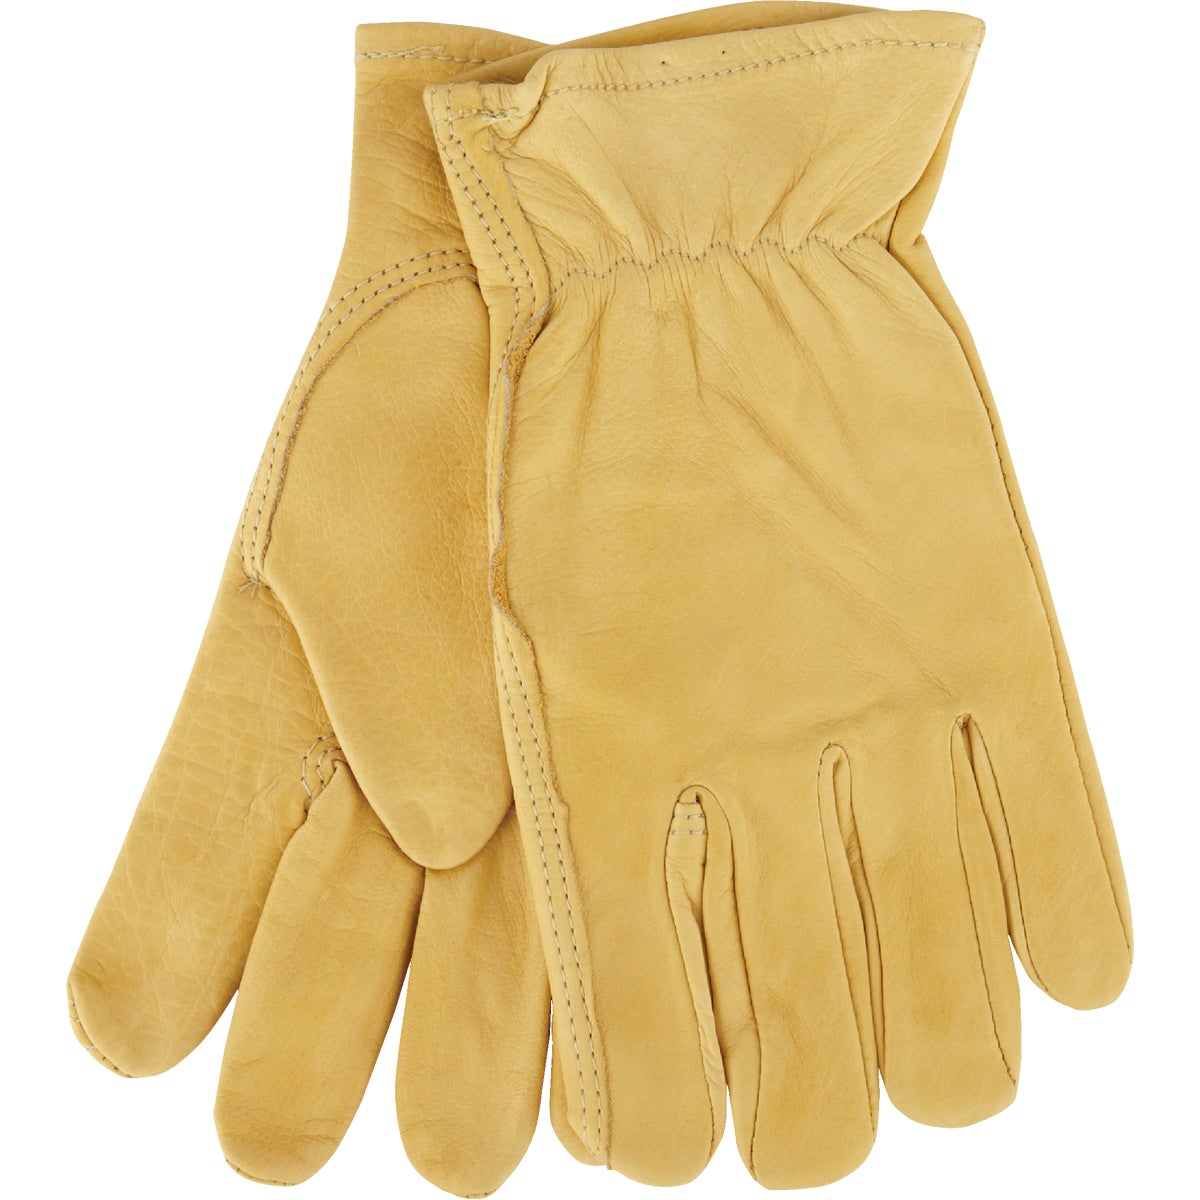 LRG LEATHER GLOVE - 710323 by Do it Best